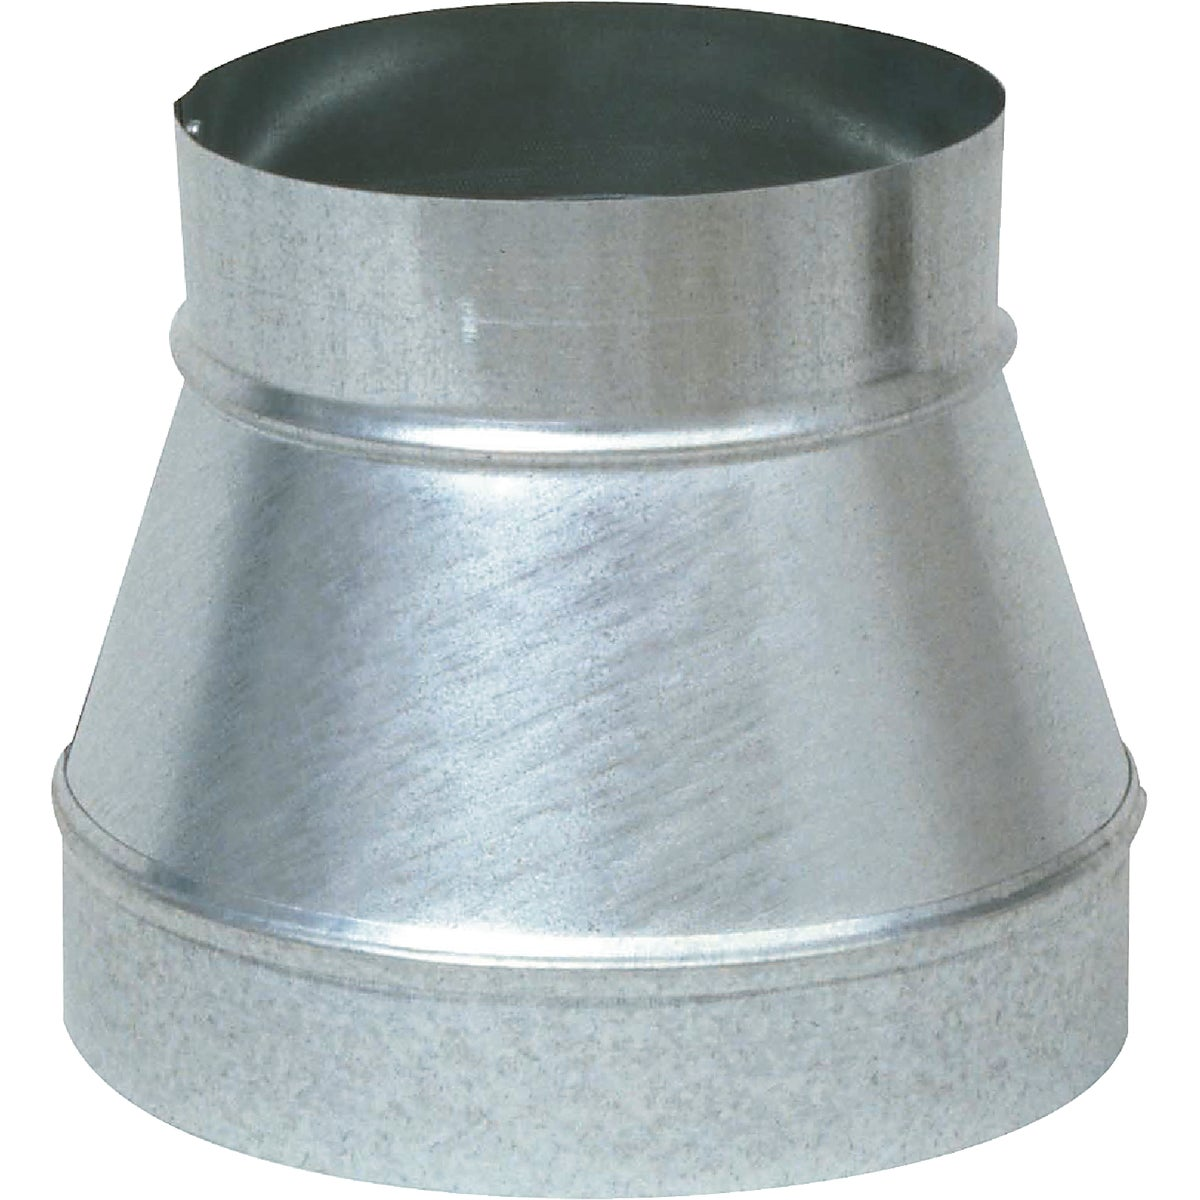 5-4 INCREASER/REDUCER - GV0781-A by Imperial Mfg Group